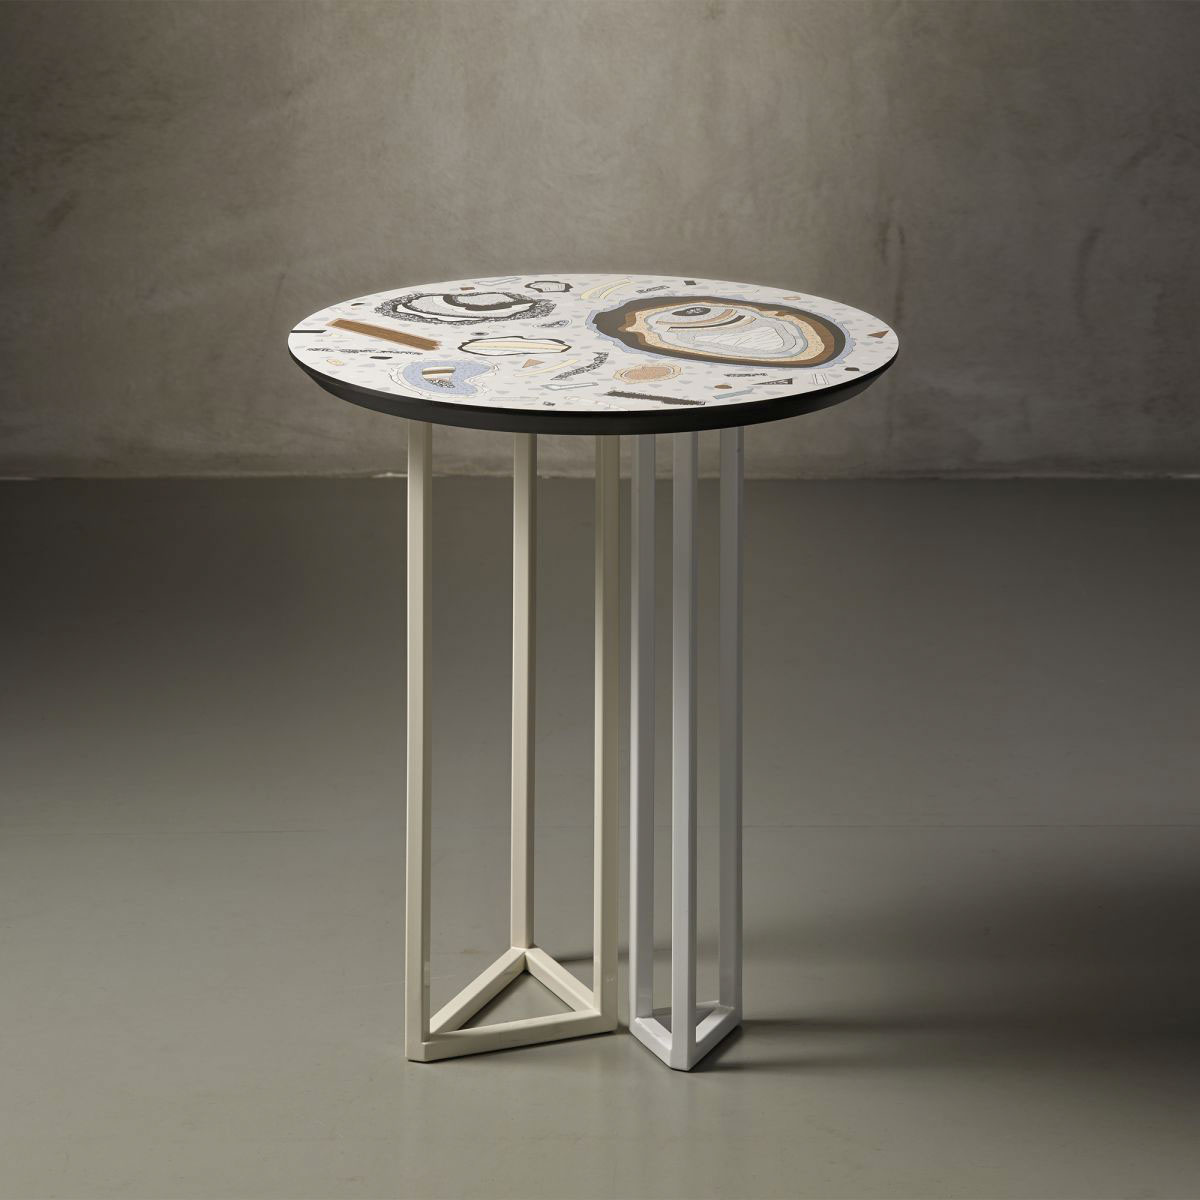 Moon Rock collection – Moon E low table Bethan Laura Wood pic-1